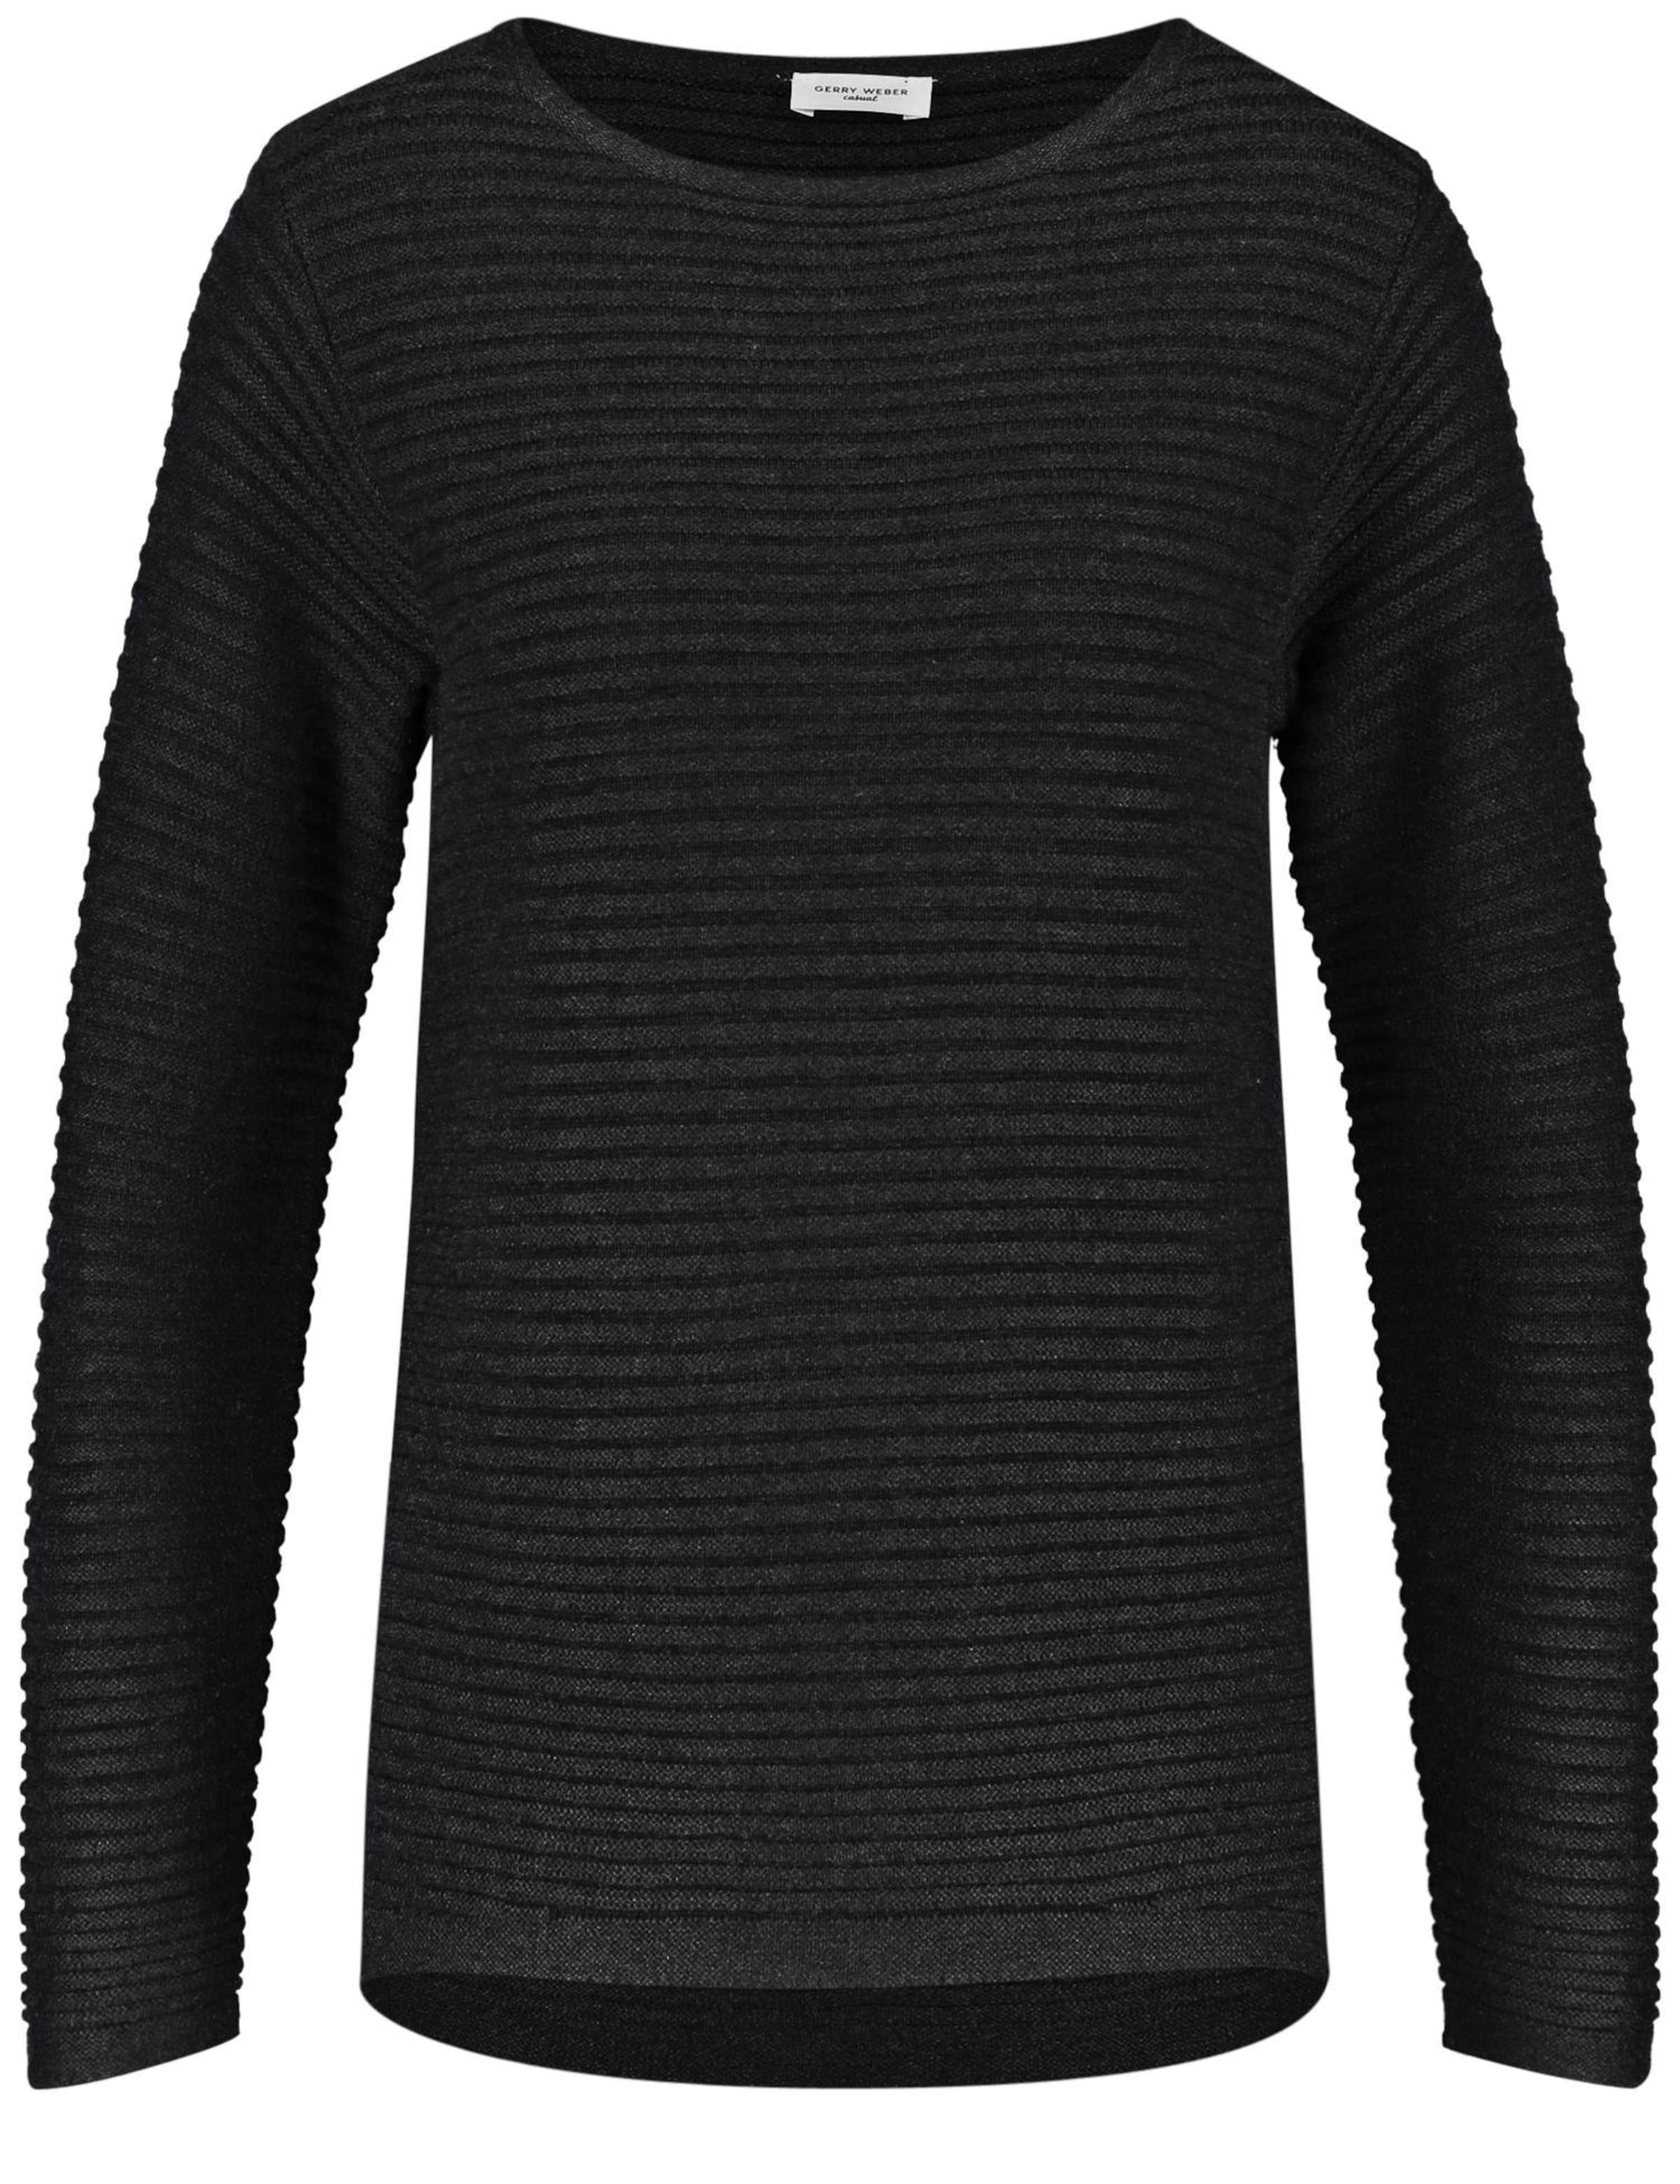 Pullover Pullover Gerry Anthrazit Weber In In Weber Gerry Anthrazit Gerry 2H9IED